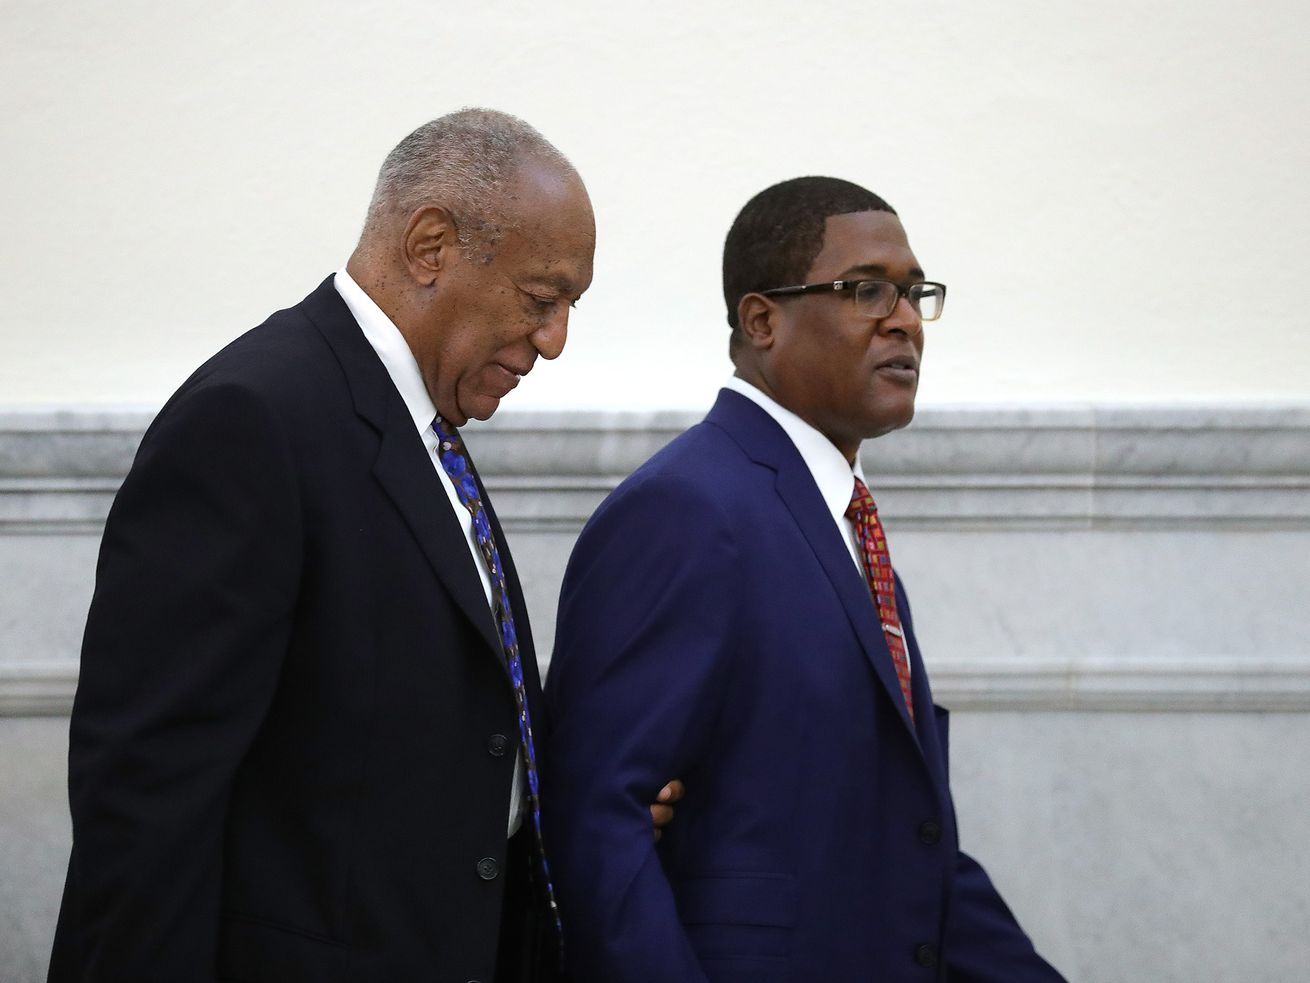 Bill Cosby and Andrew Wyatt during day one of Cosby's sentencing hearing on September 24, 2018.